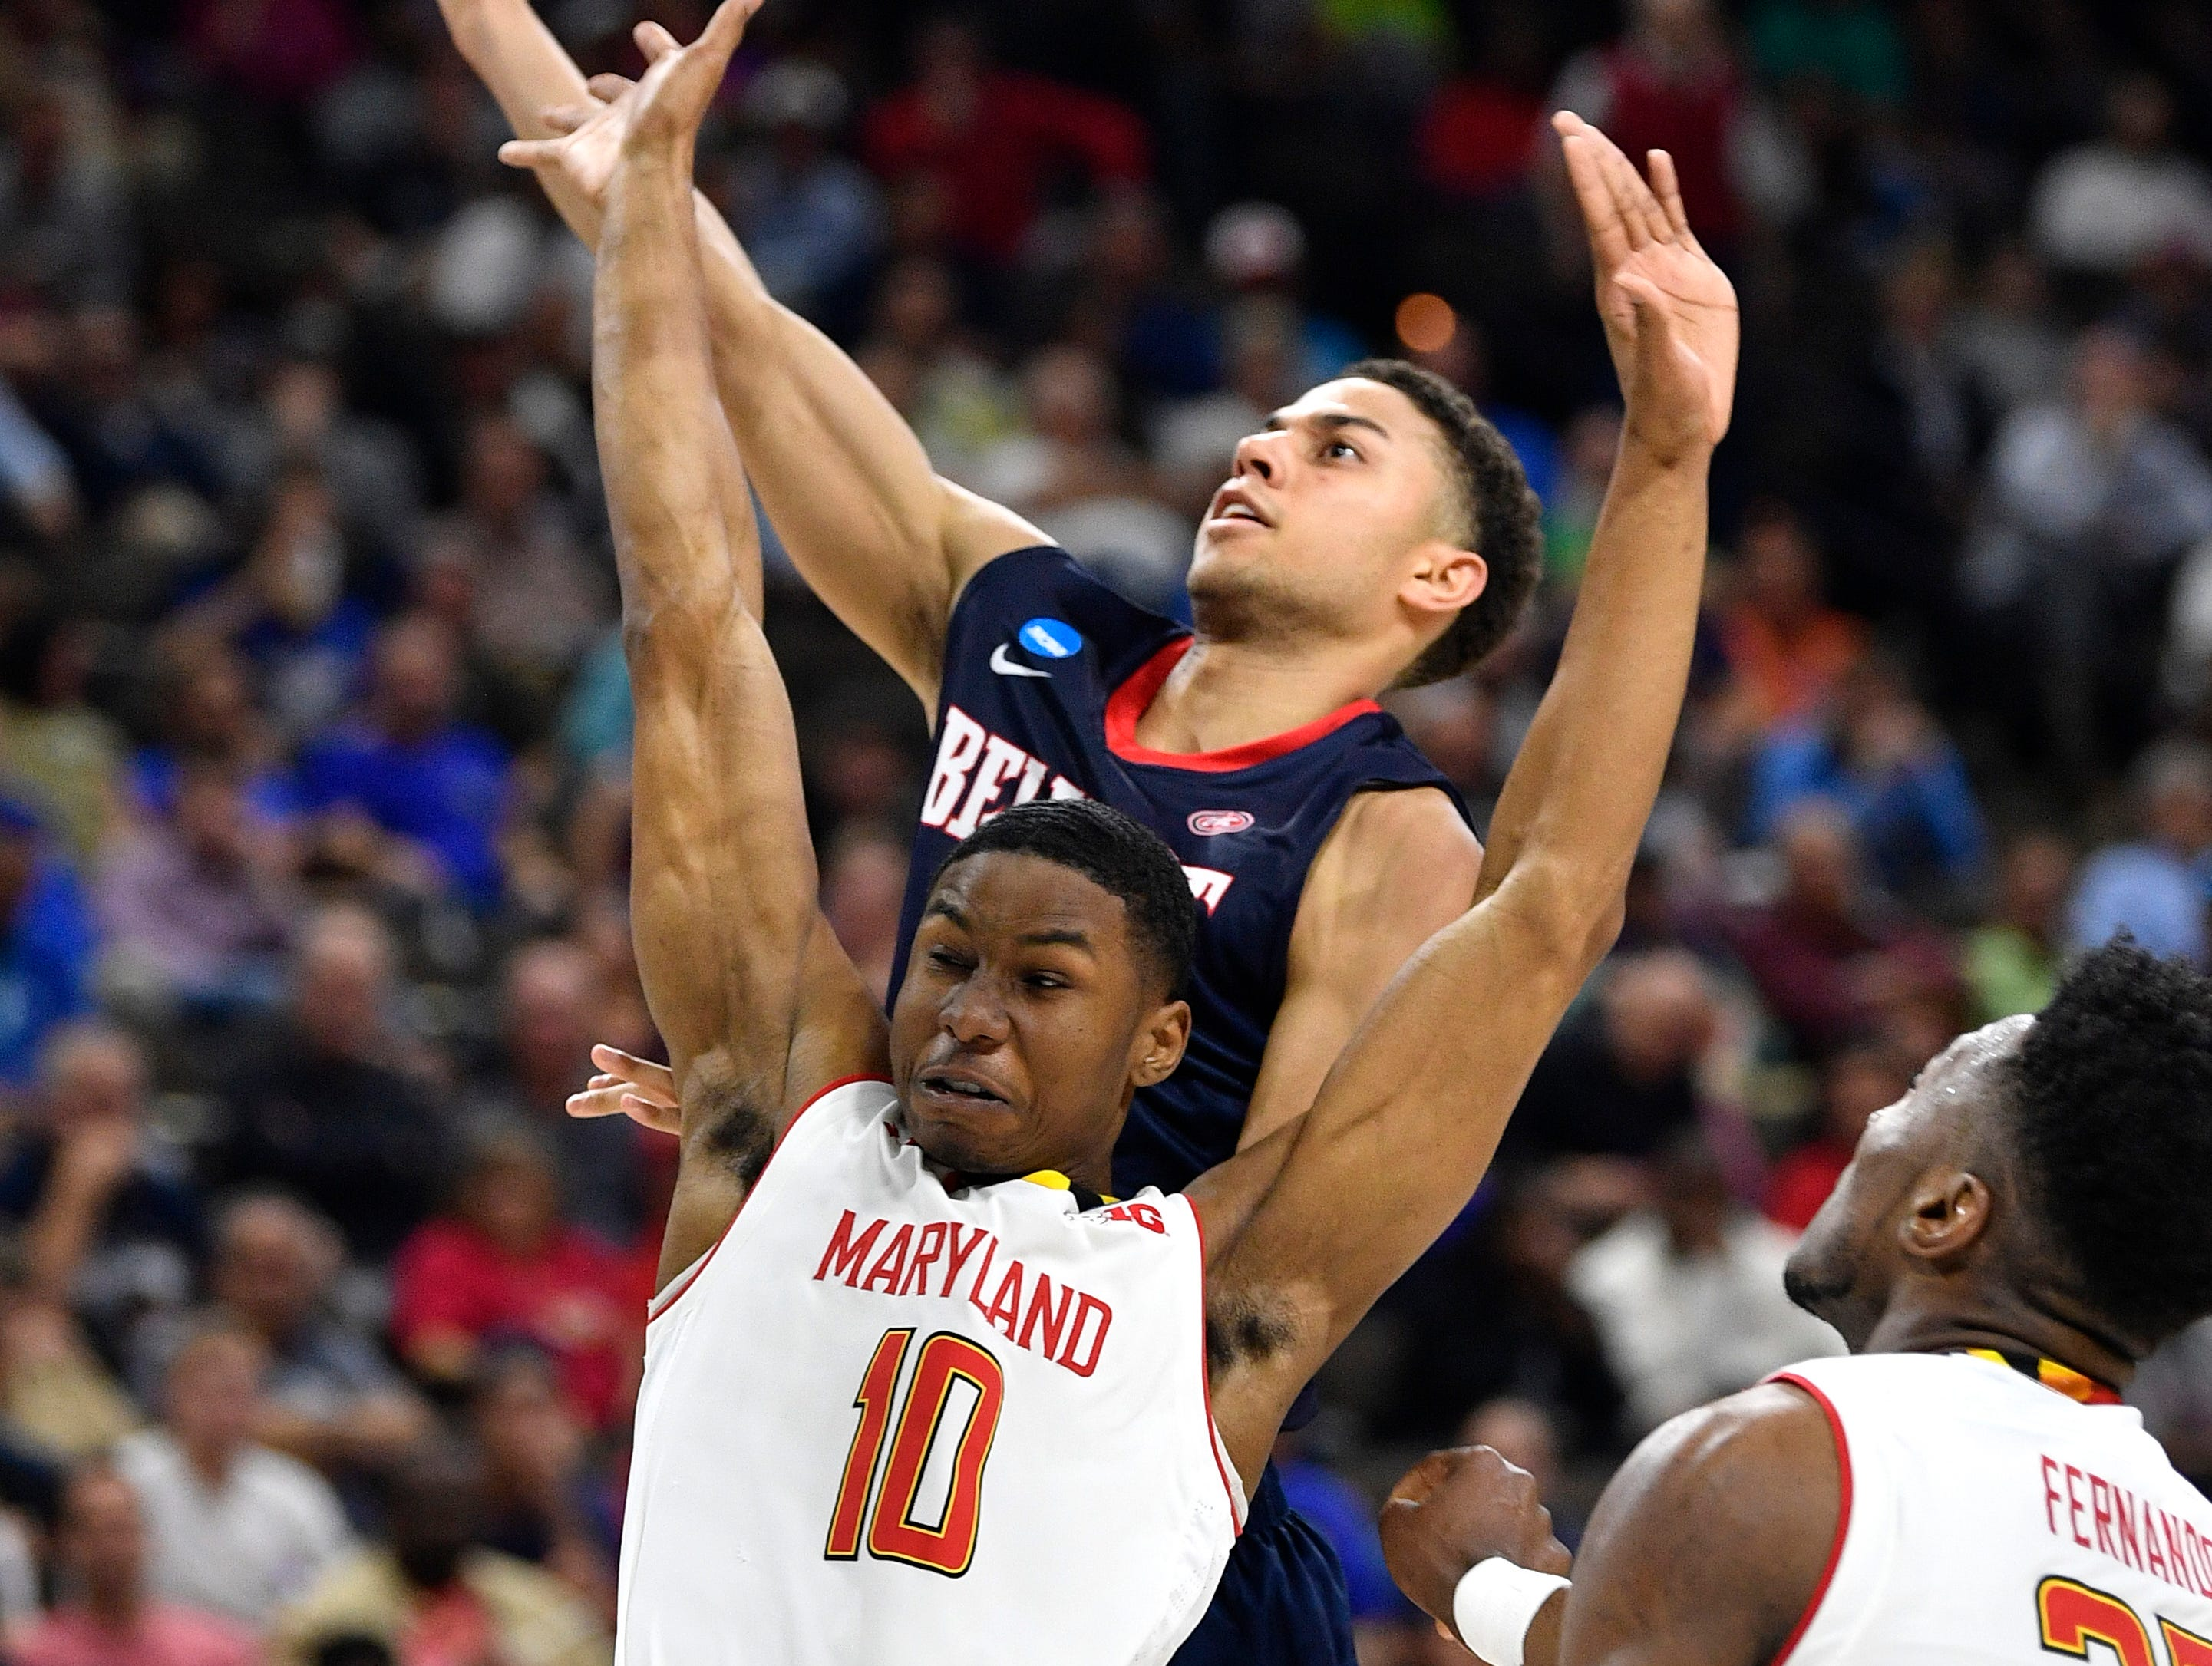 Belmont guard Kevin McClain (11) shoots past Maryland guard Serrel Smith Jr. (10) during the first half of the first-round NCAA college basketball tournament game at VyStar Veterans Memorial Arena in Jacksonville, Fla., Thursday, March 21, 2019.